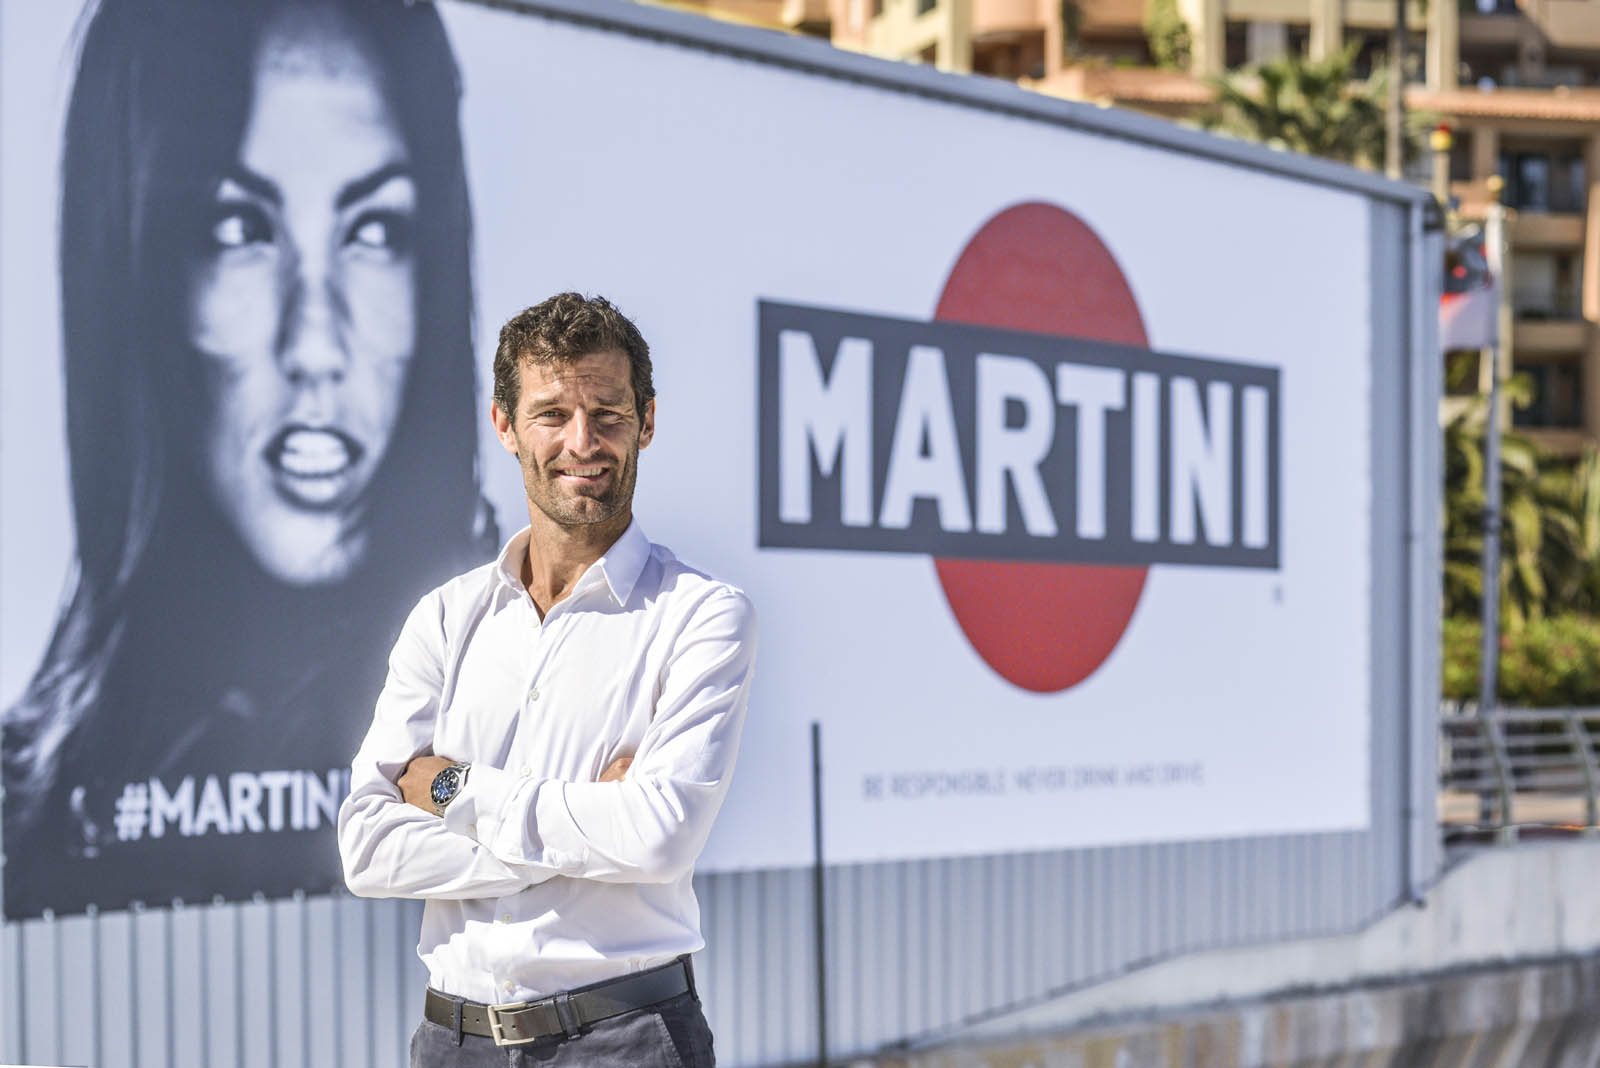 Martini_Monaco_Billboard_05